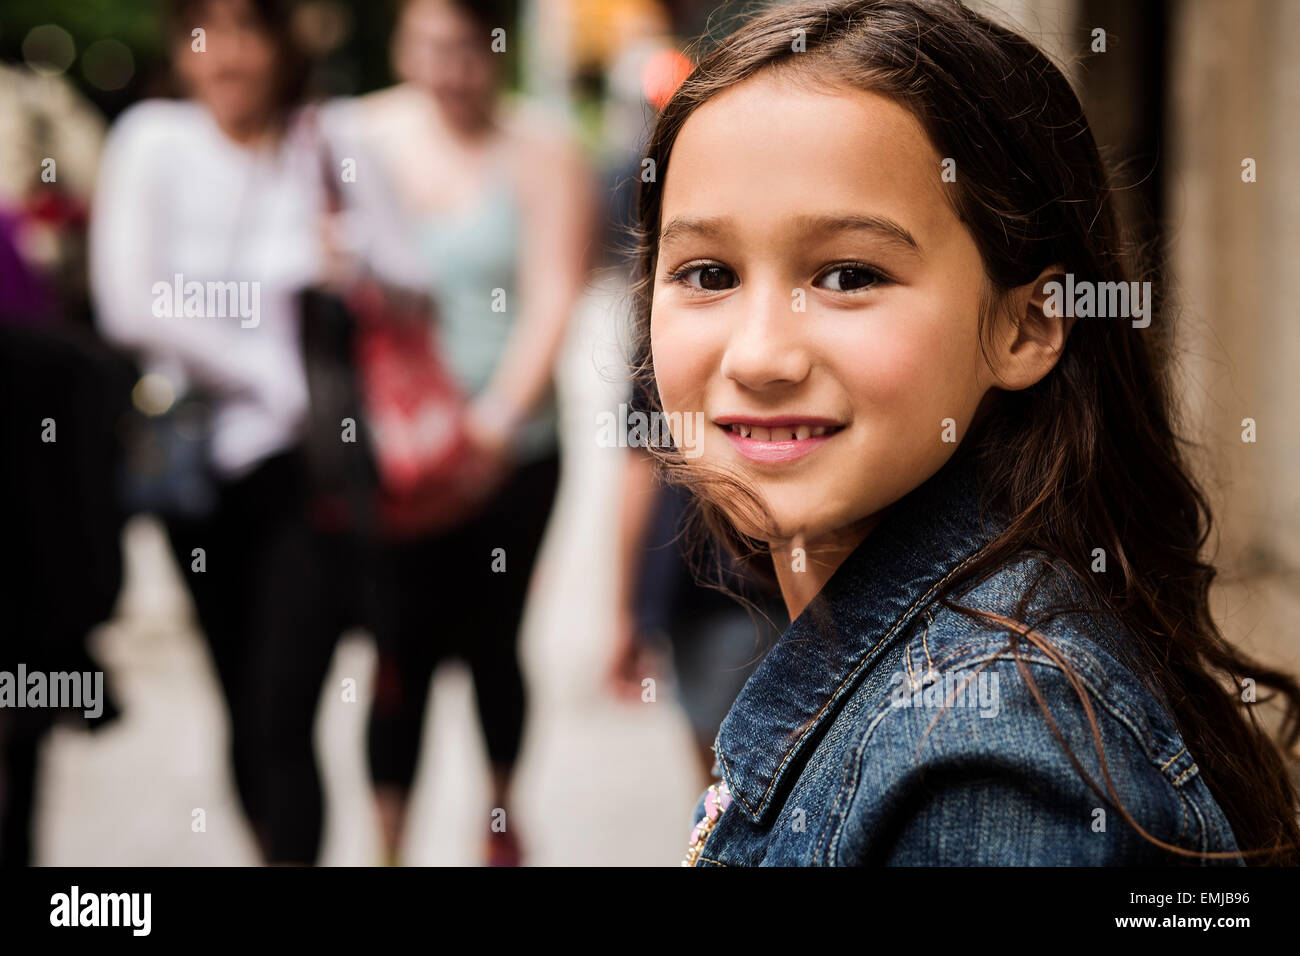 Portrait of a Young Girl, Portrait Banque D'Images